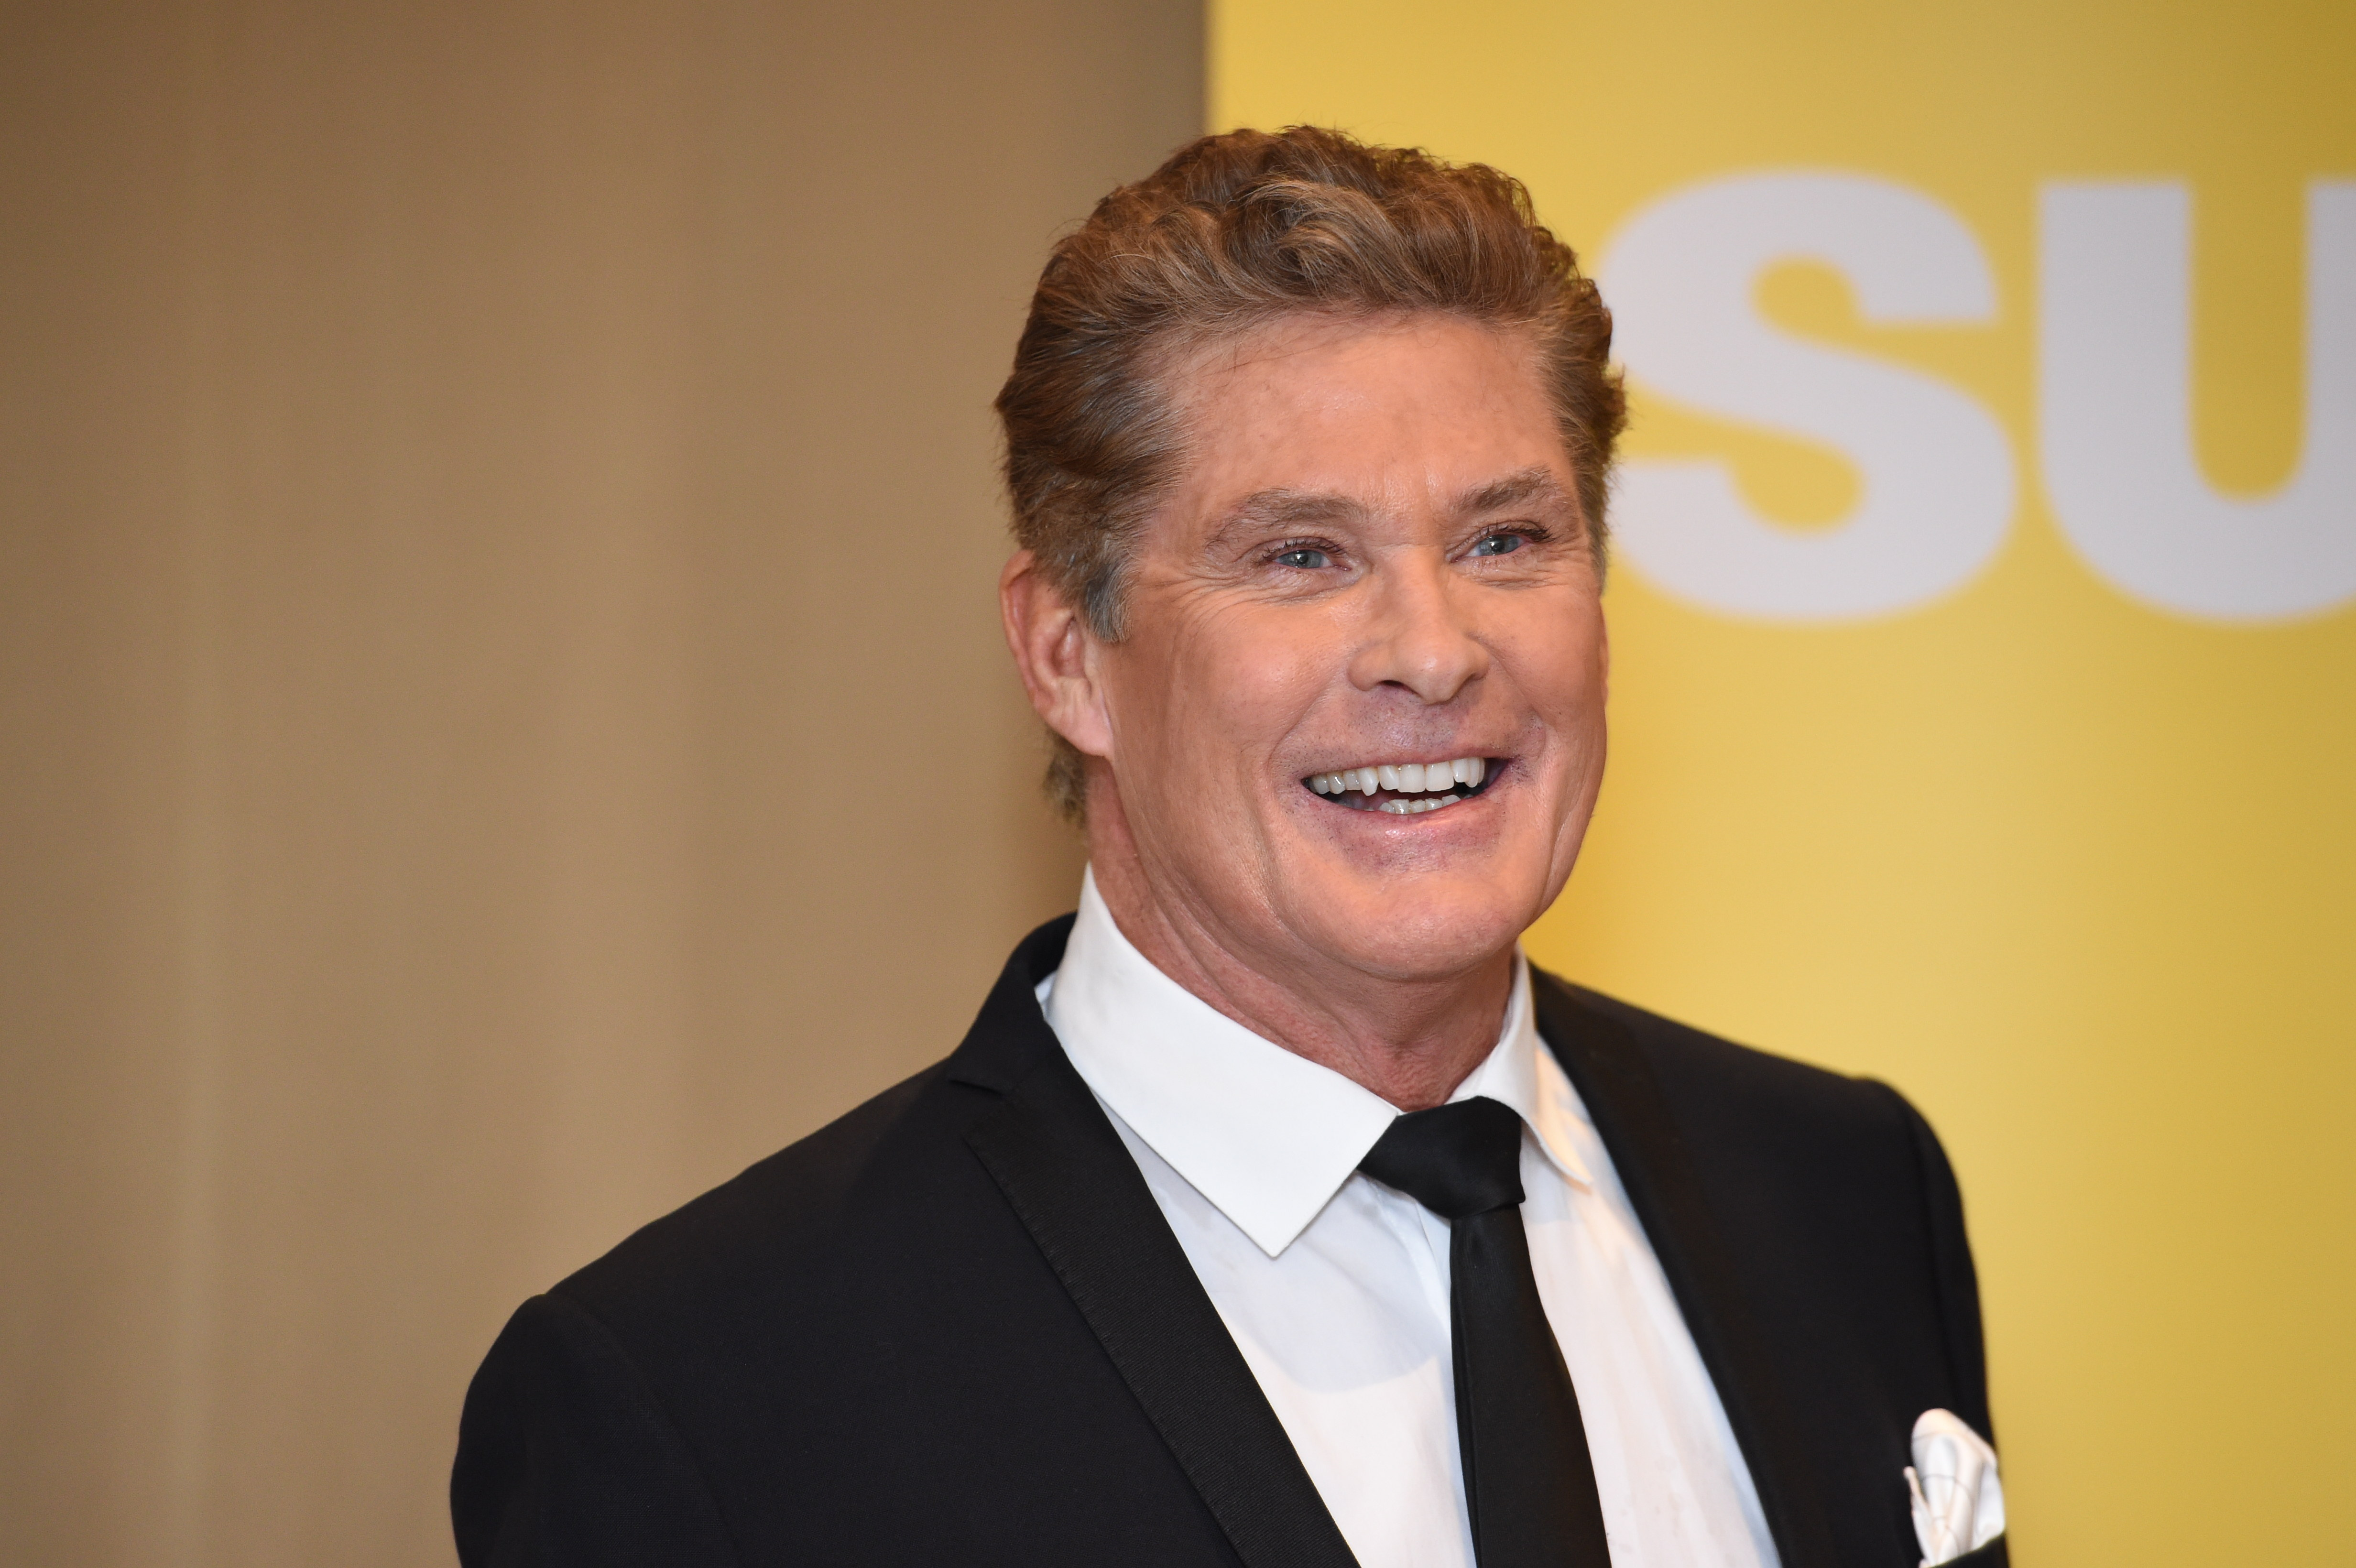 American actor and personality David Hasselhoff during a press conference in Helsinki, Finland on Jan. 16, 2015.